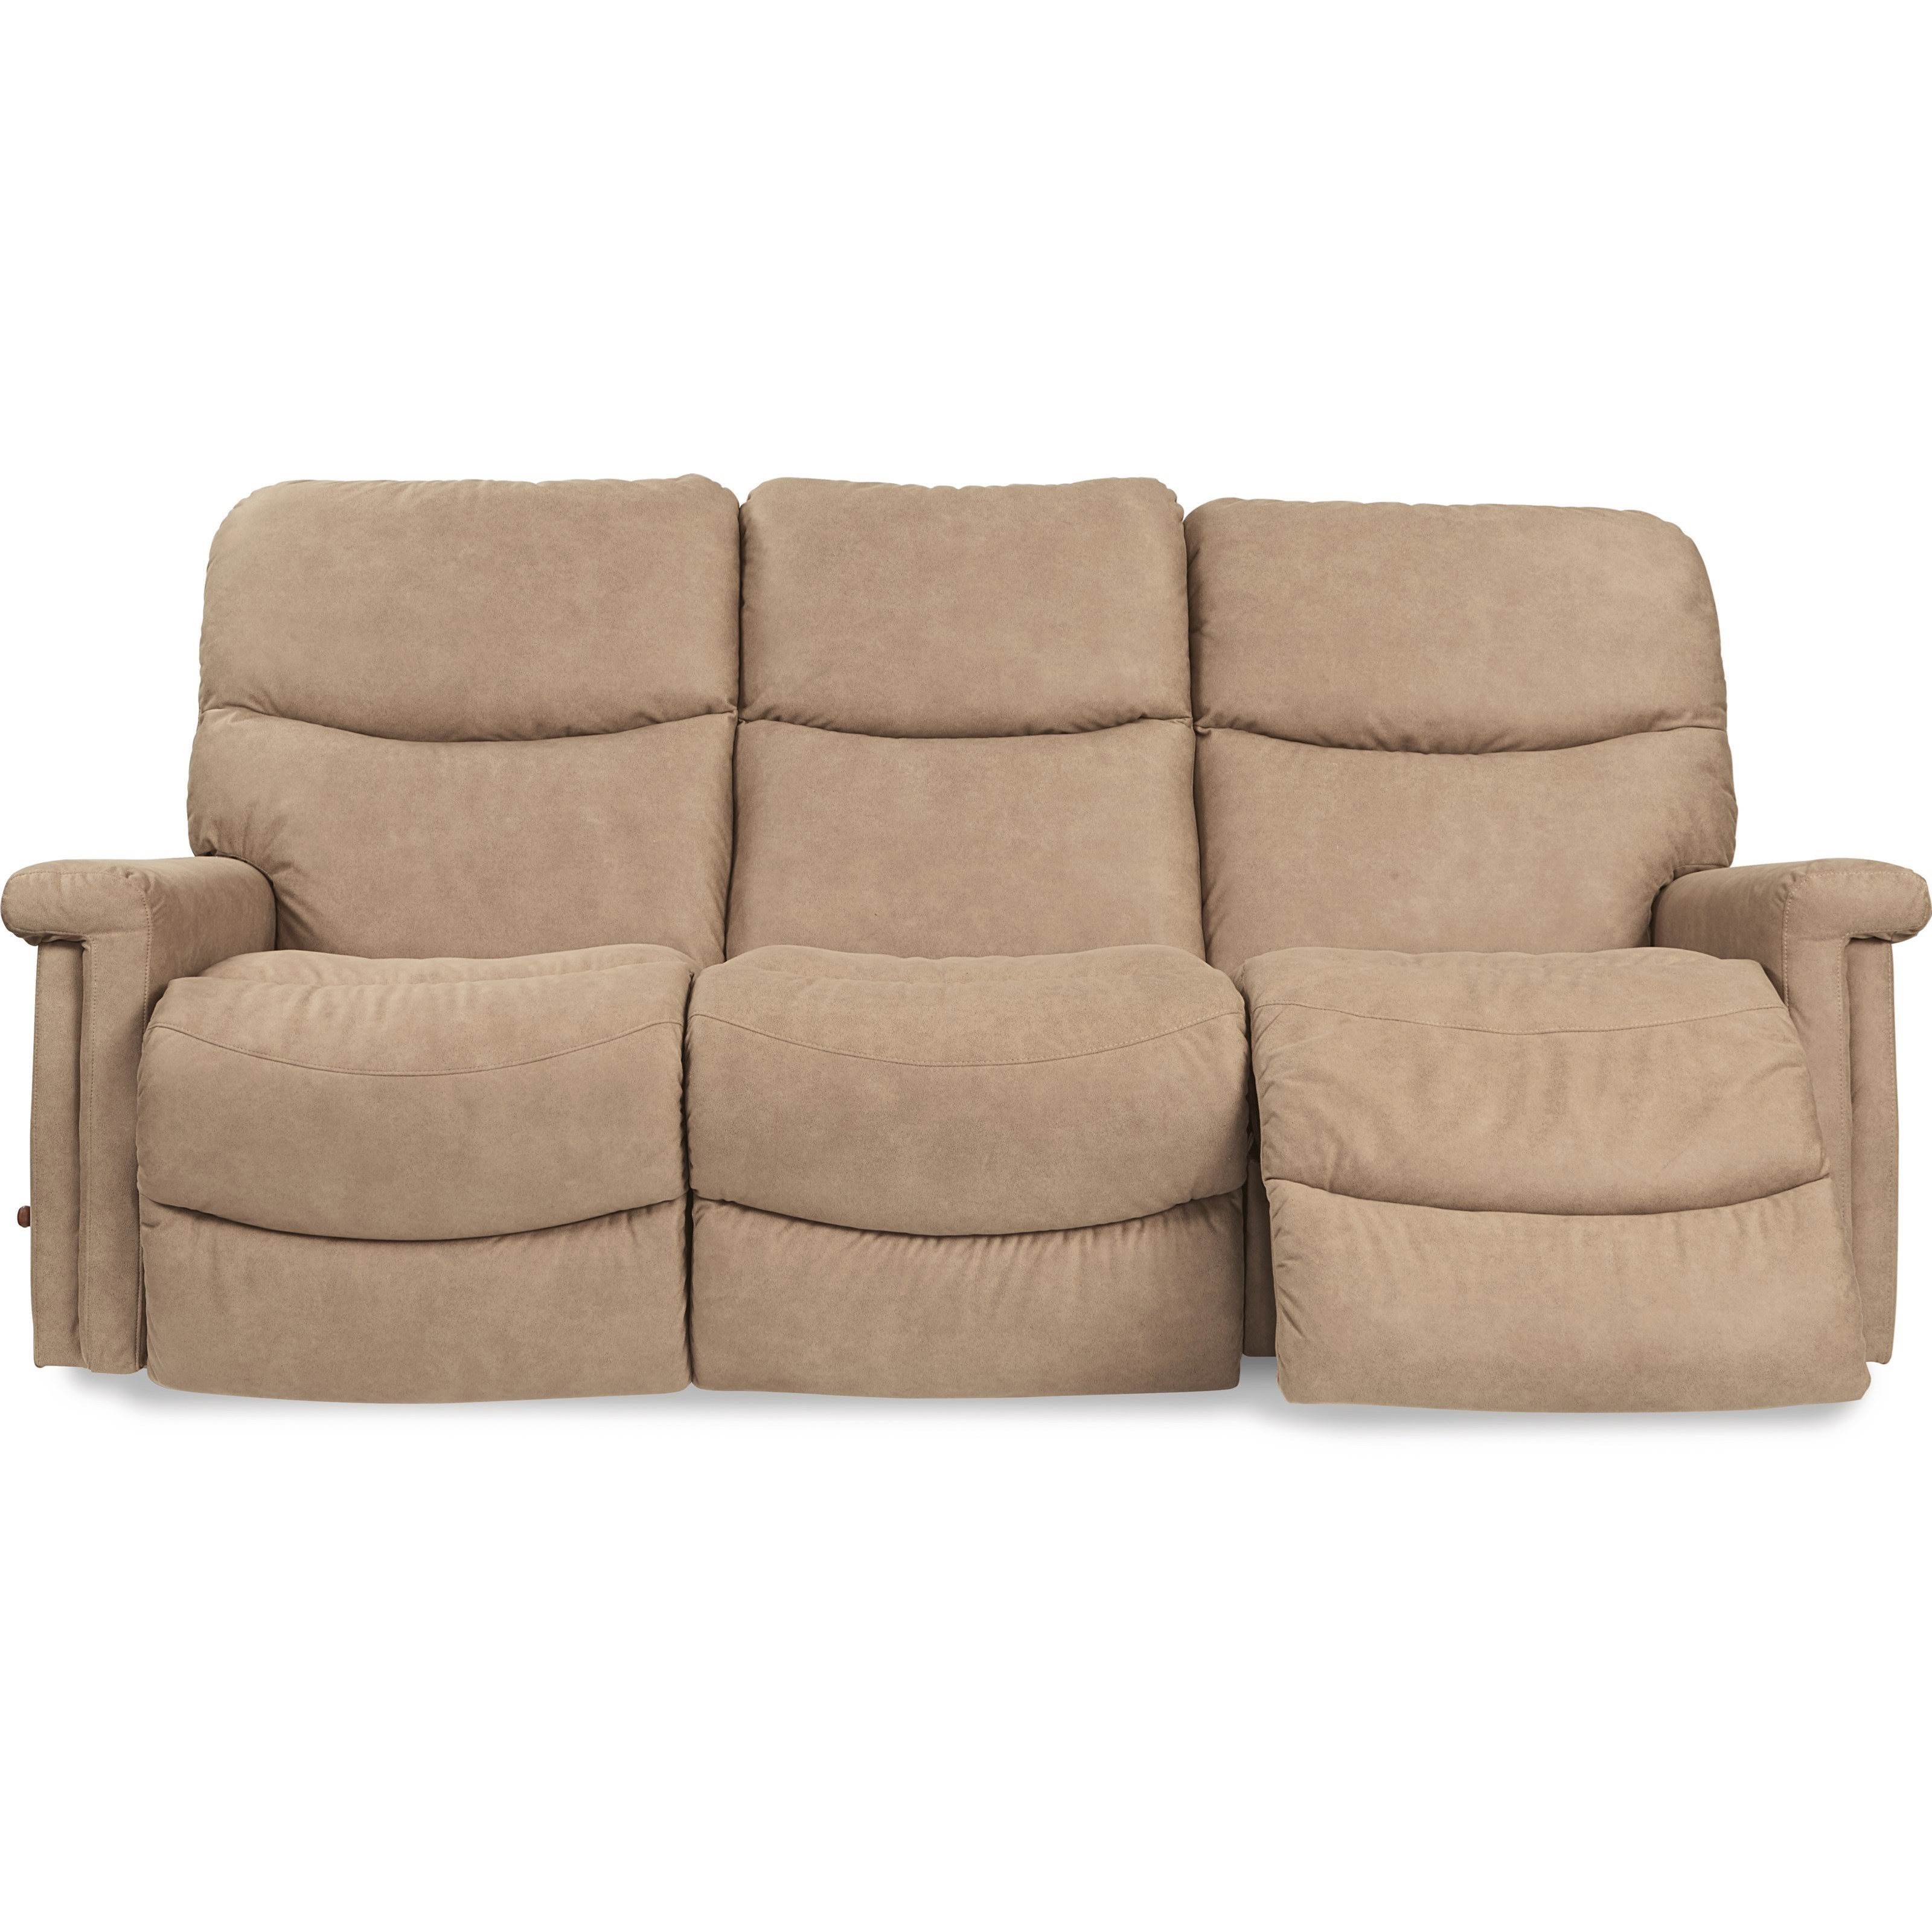 La-Z-Boy Baylor LZB Casual Wall Saver Reclining Sofa